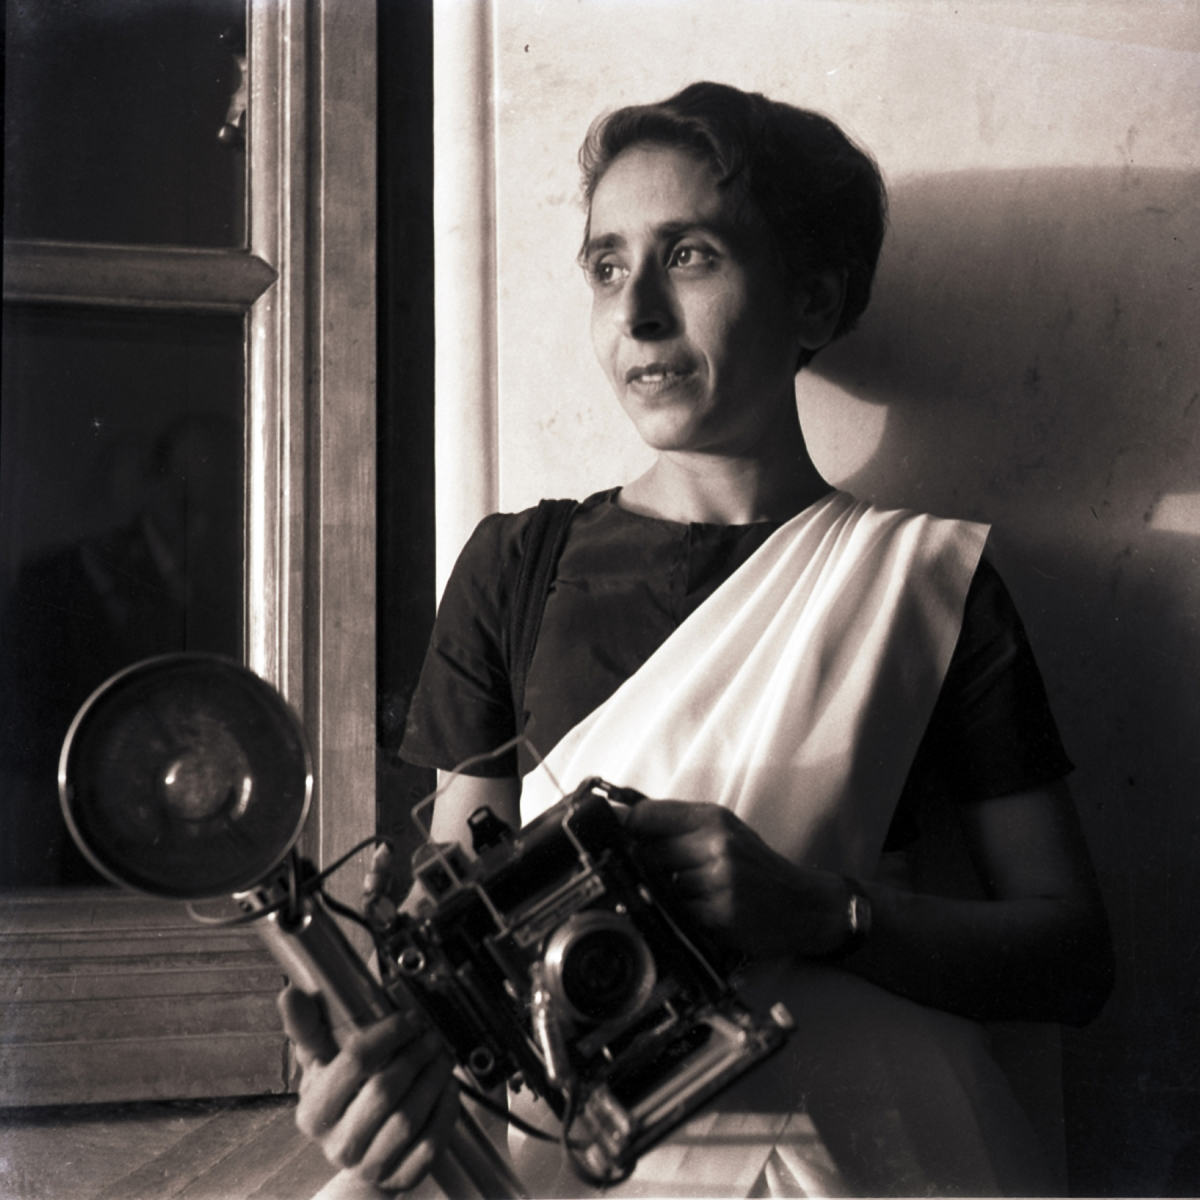 Homai with her wooden  Speed Graphic Pacemaker camera